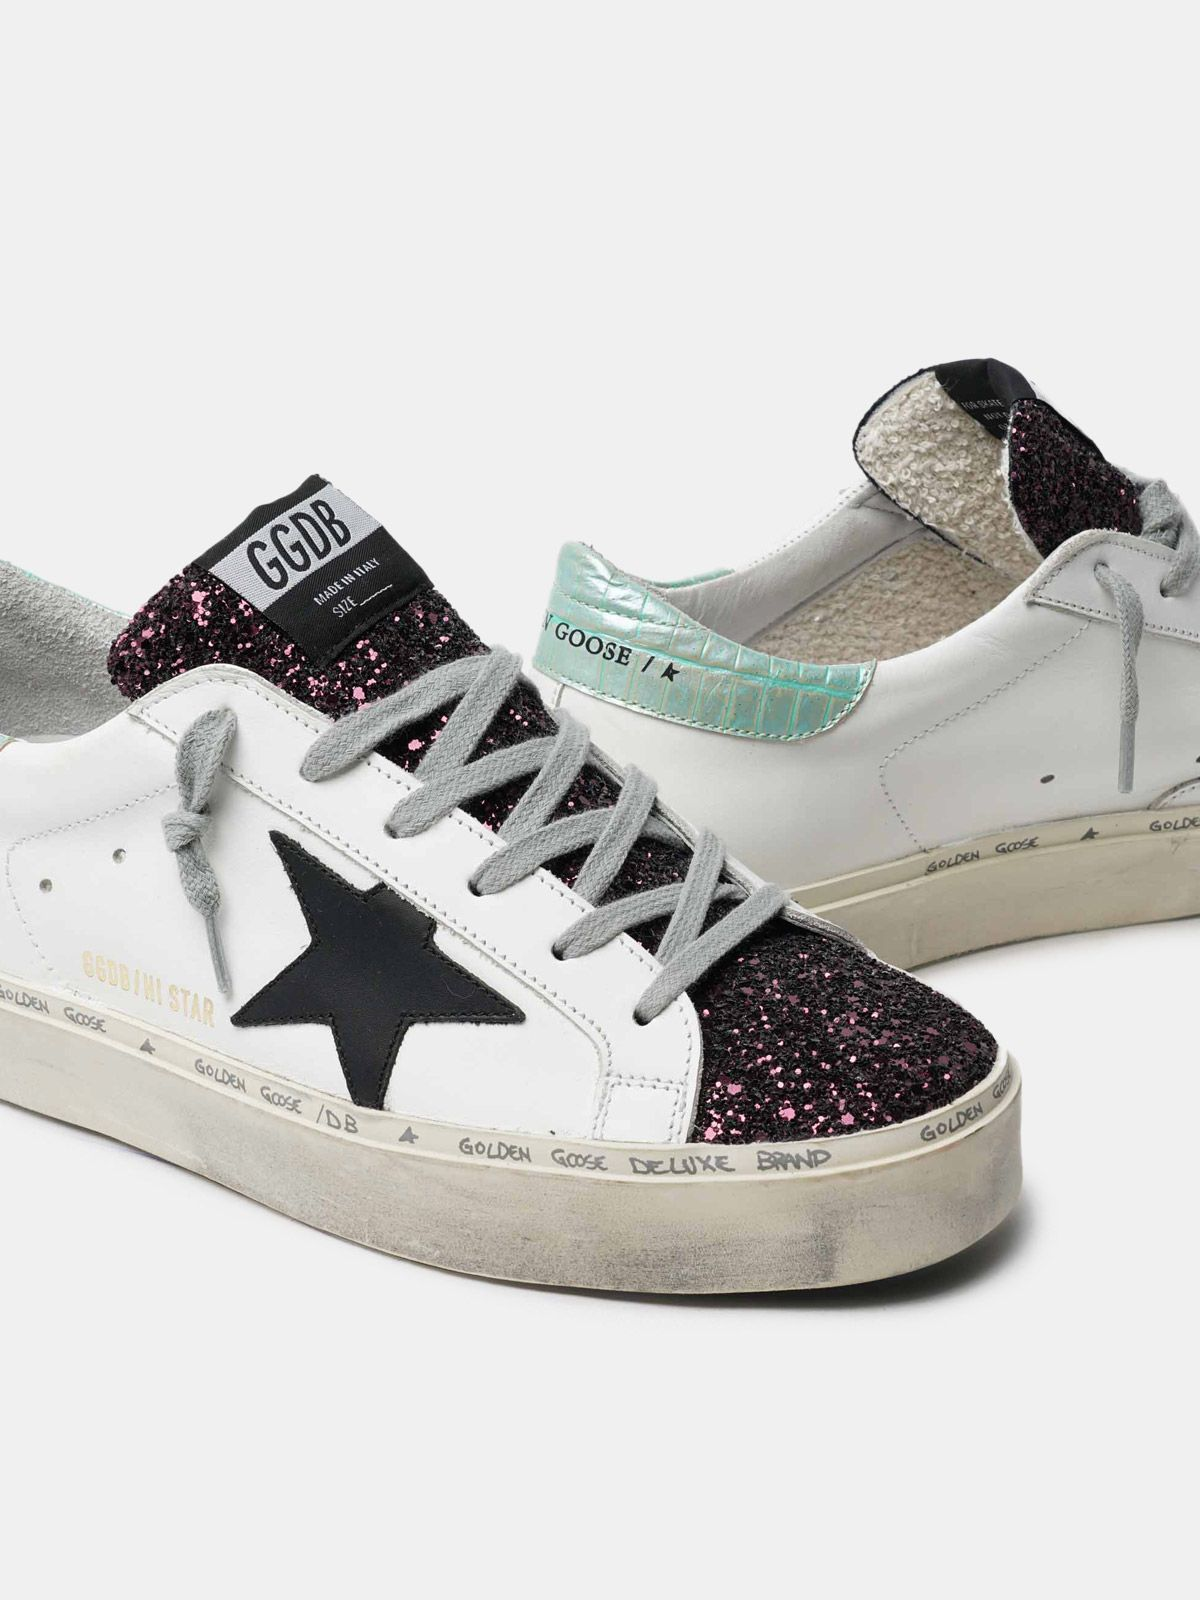 Golden Goose - White Hi-Star sneakers with glittery insert and black star in